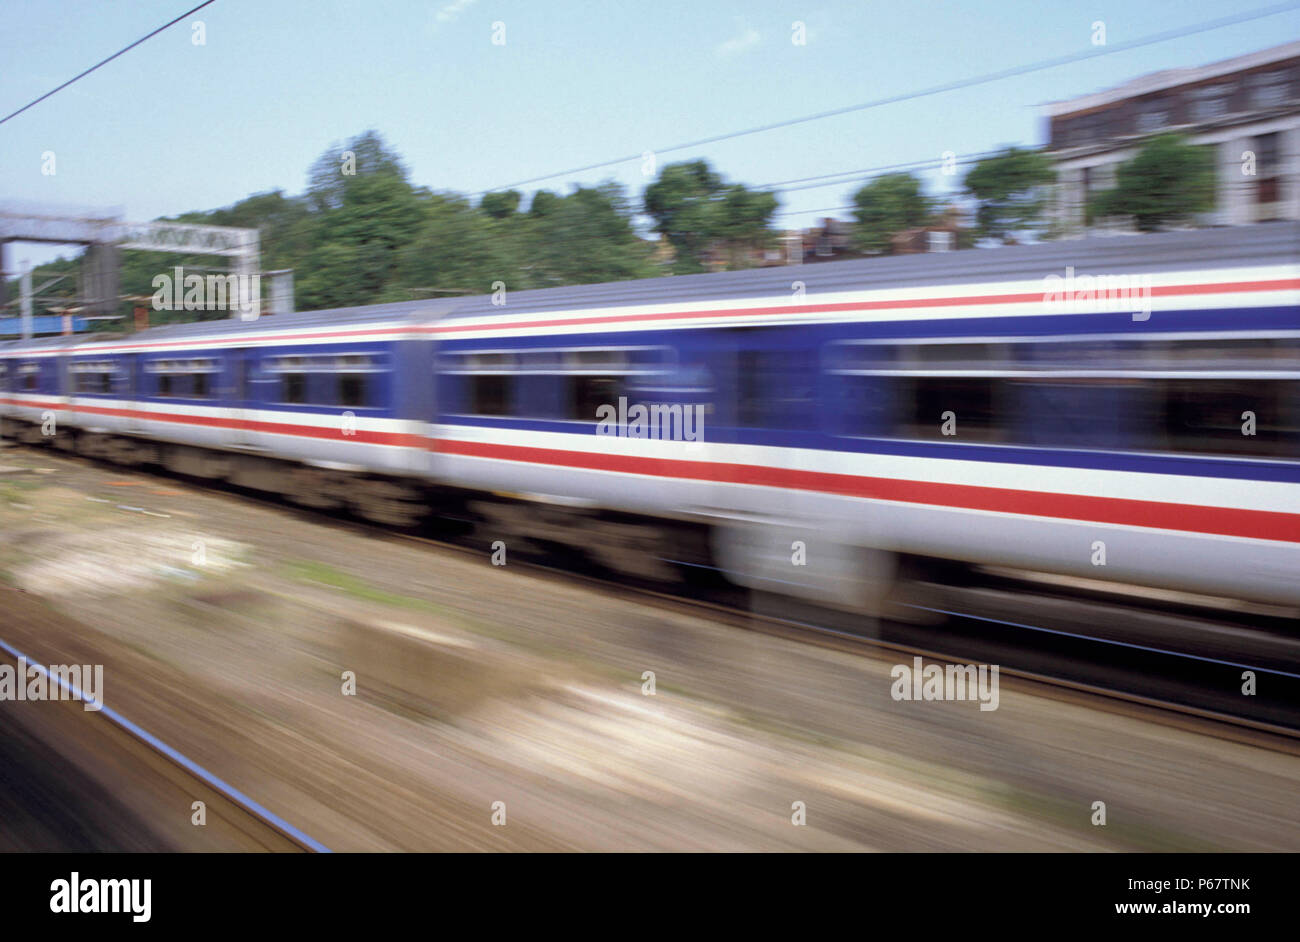 Speeding train photographed from another train. C1993 - Stock Image